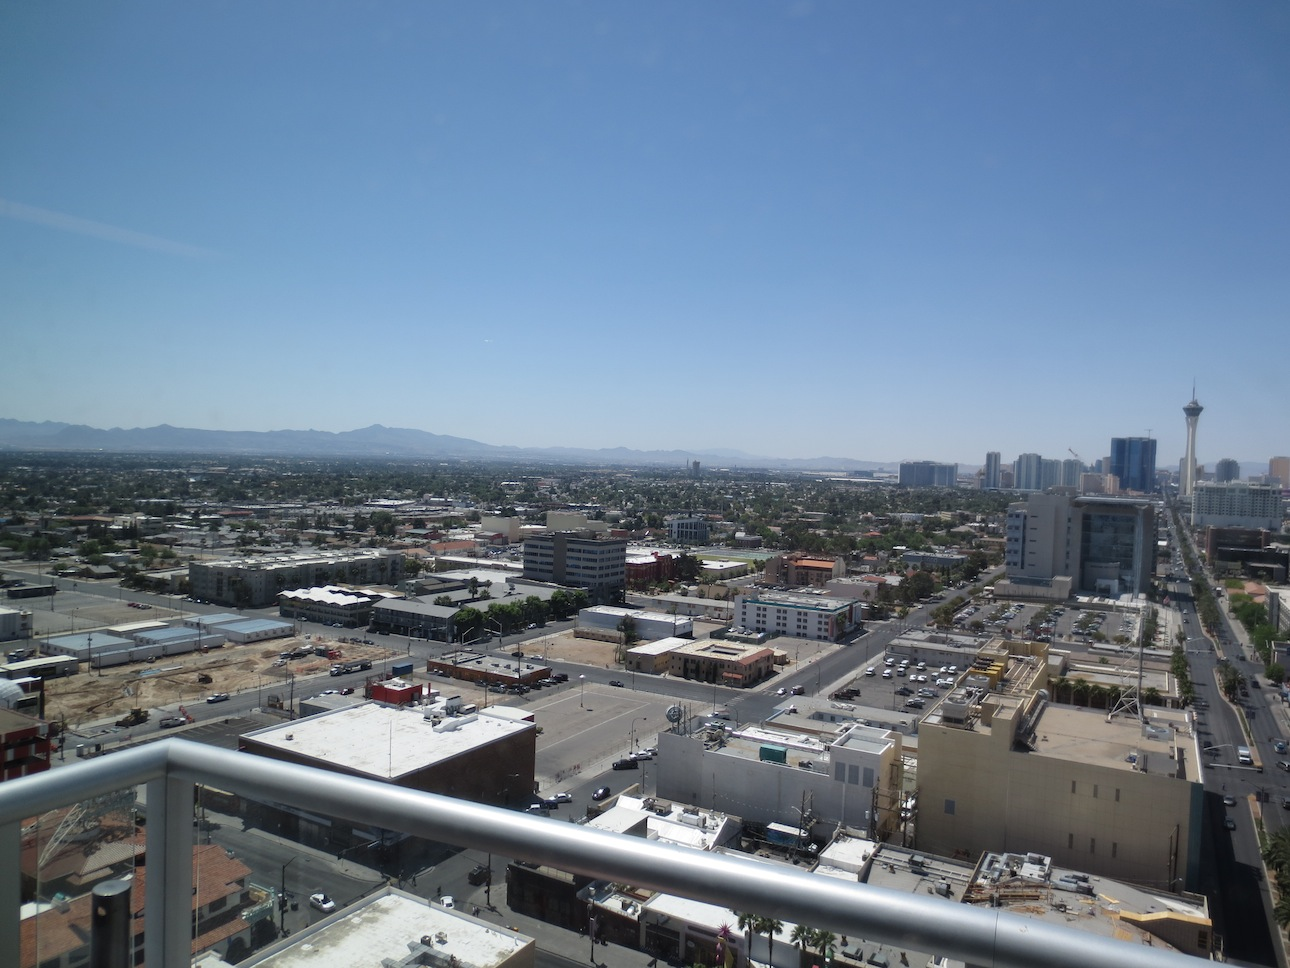 View of the new Vegas Strip from downtown.